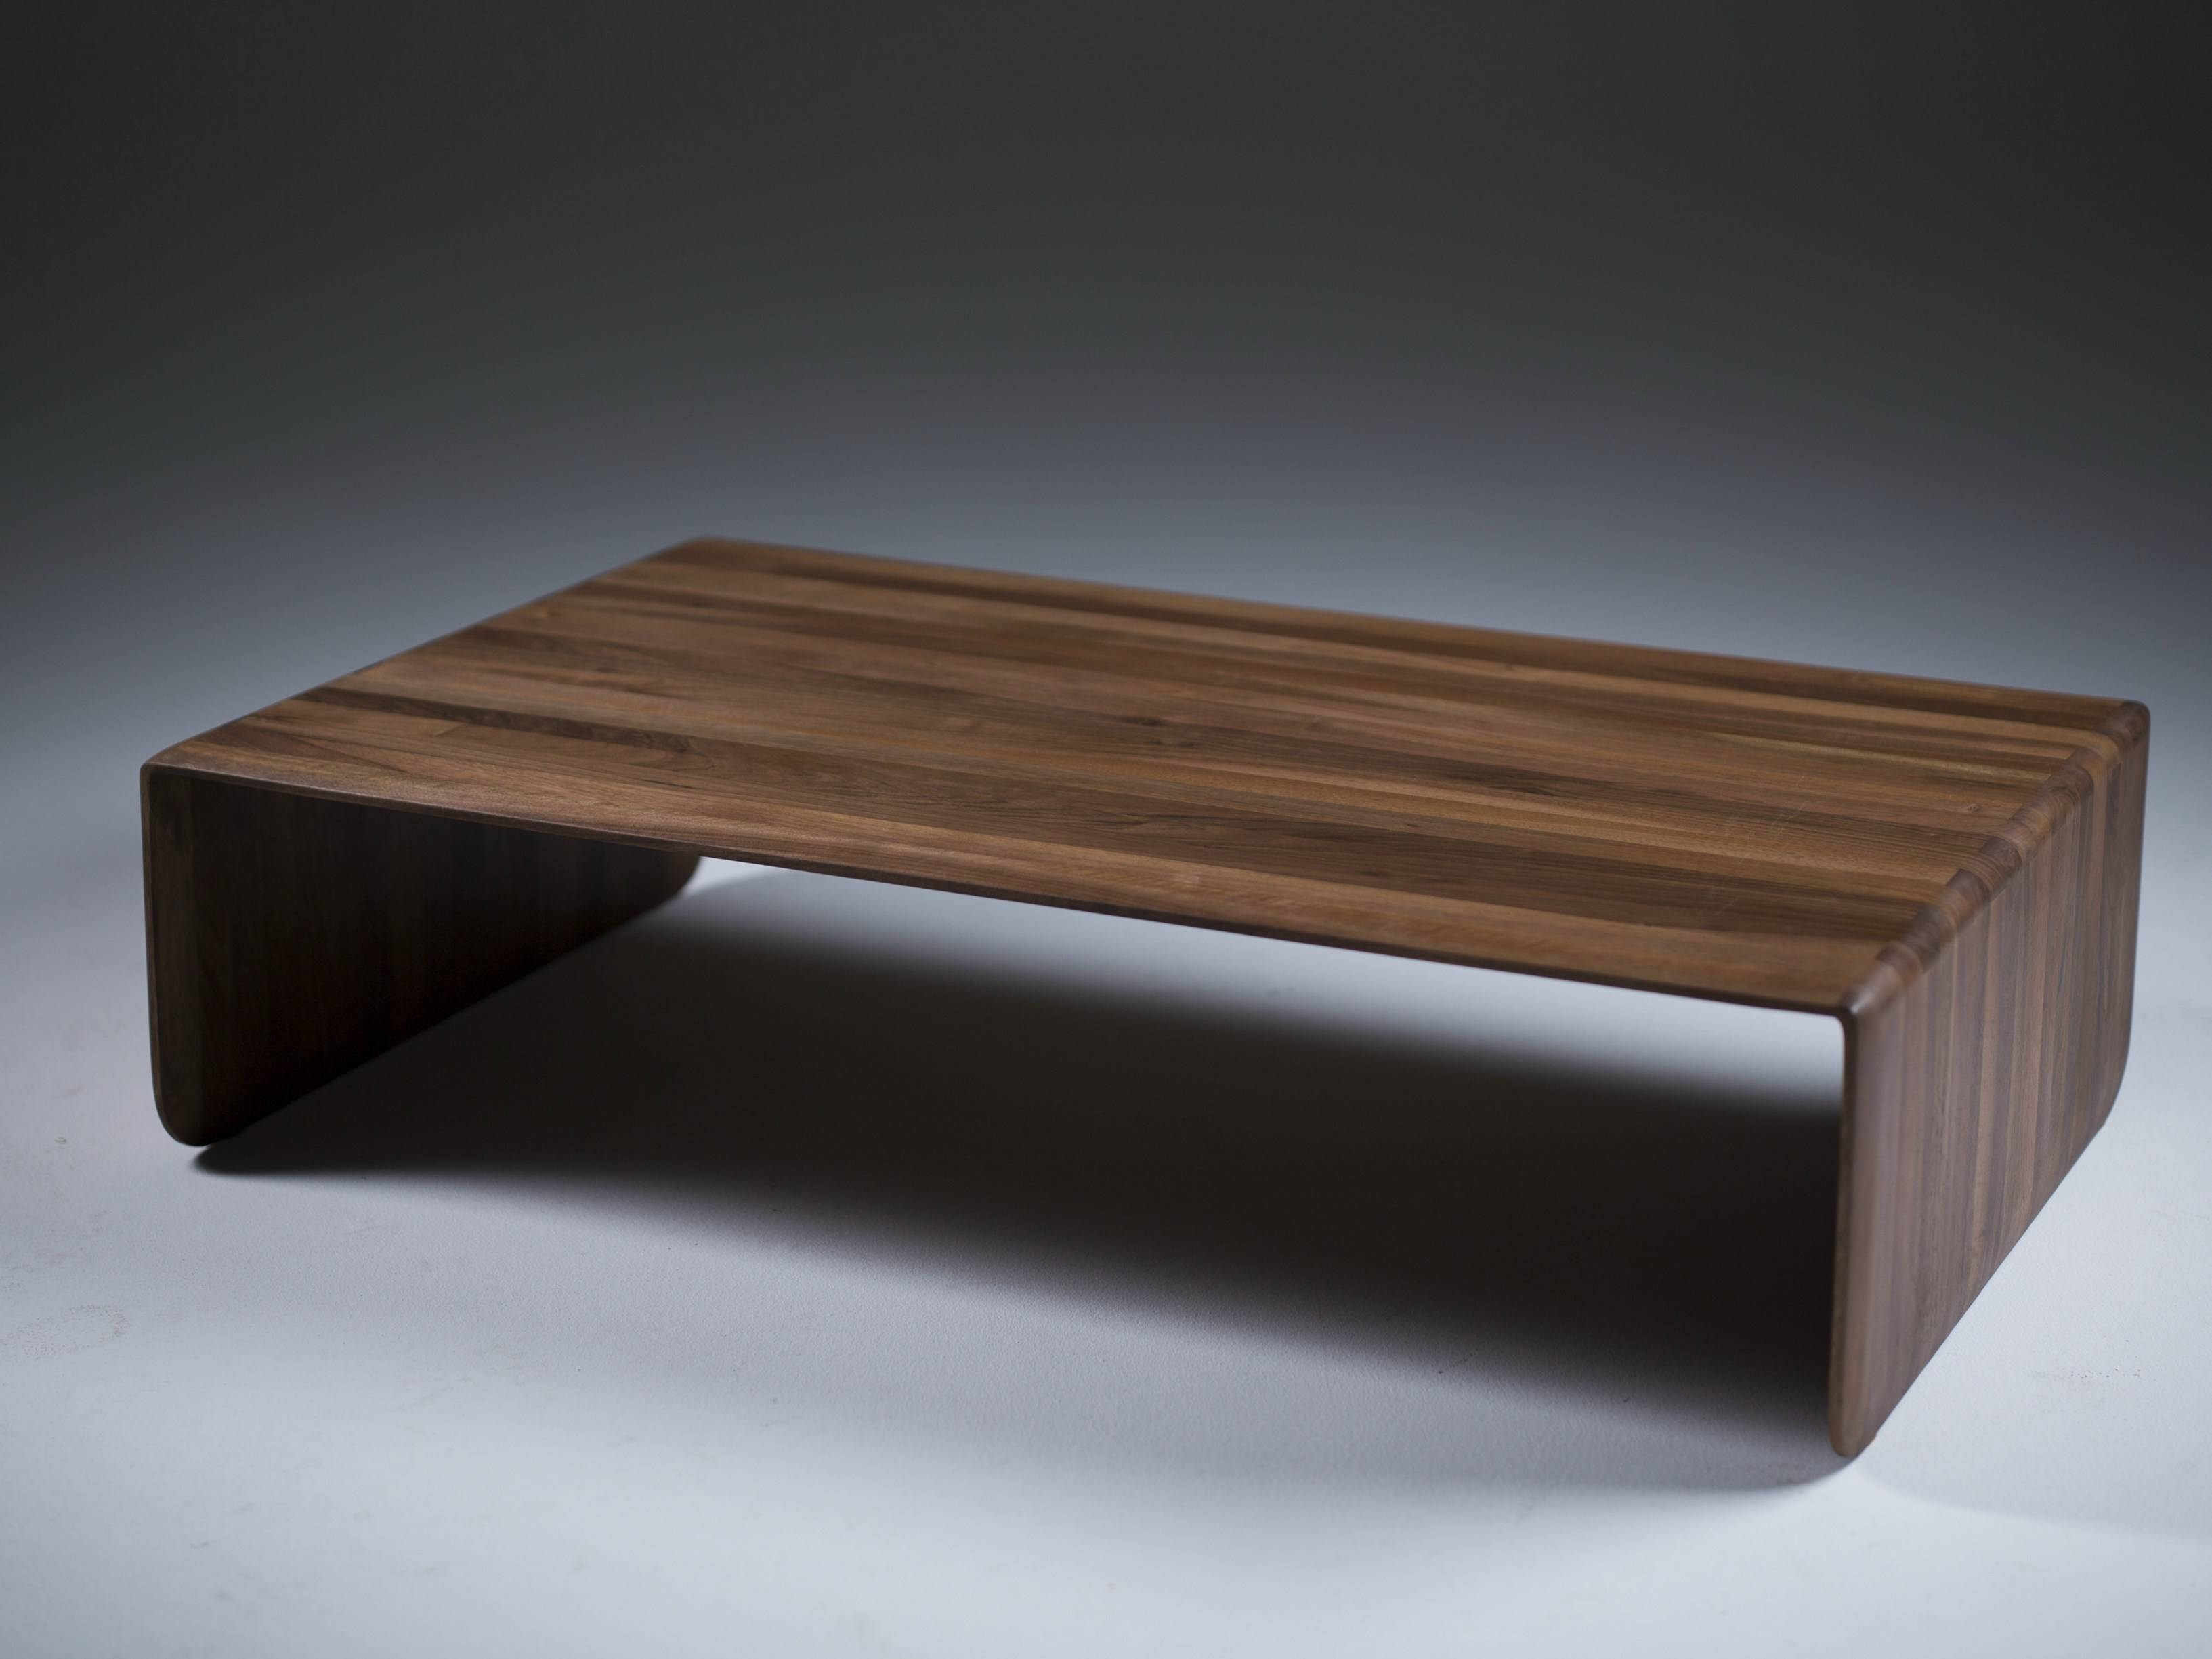 Coffee Table: Enchanting Low Profile Coffee Table Designs Best Within Solid Wood Coffee Tables (View 9 of 30)